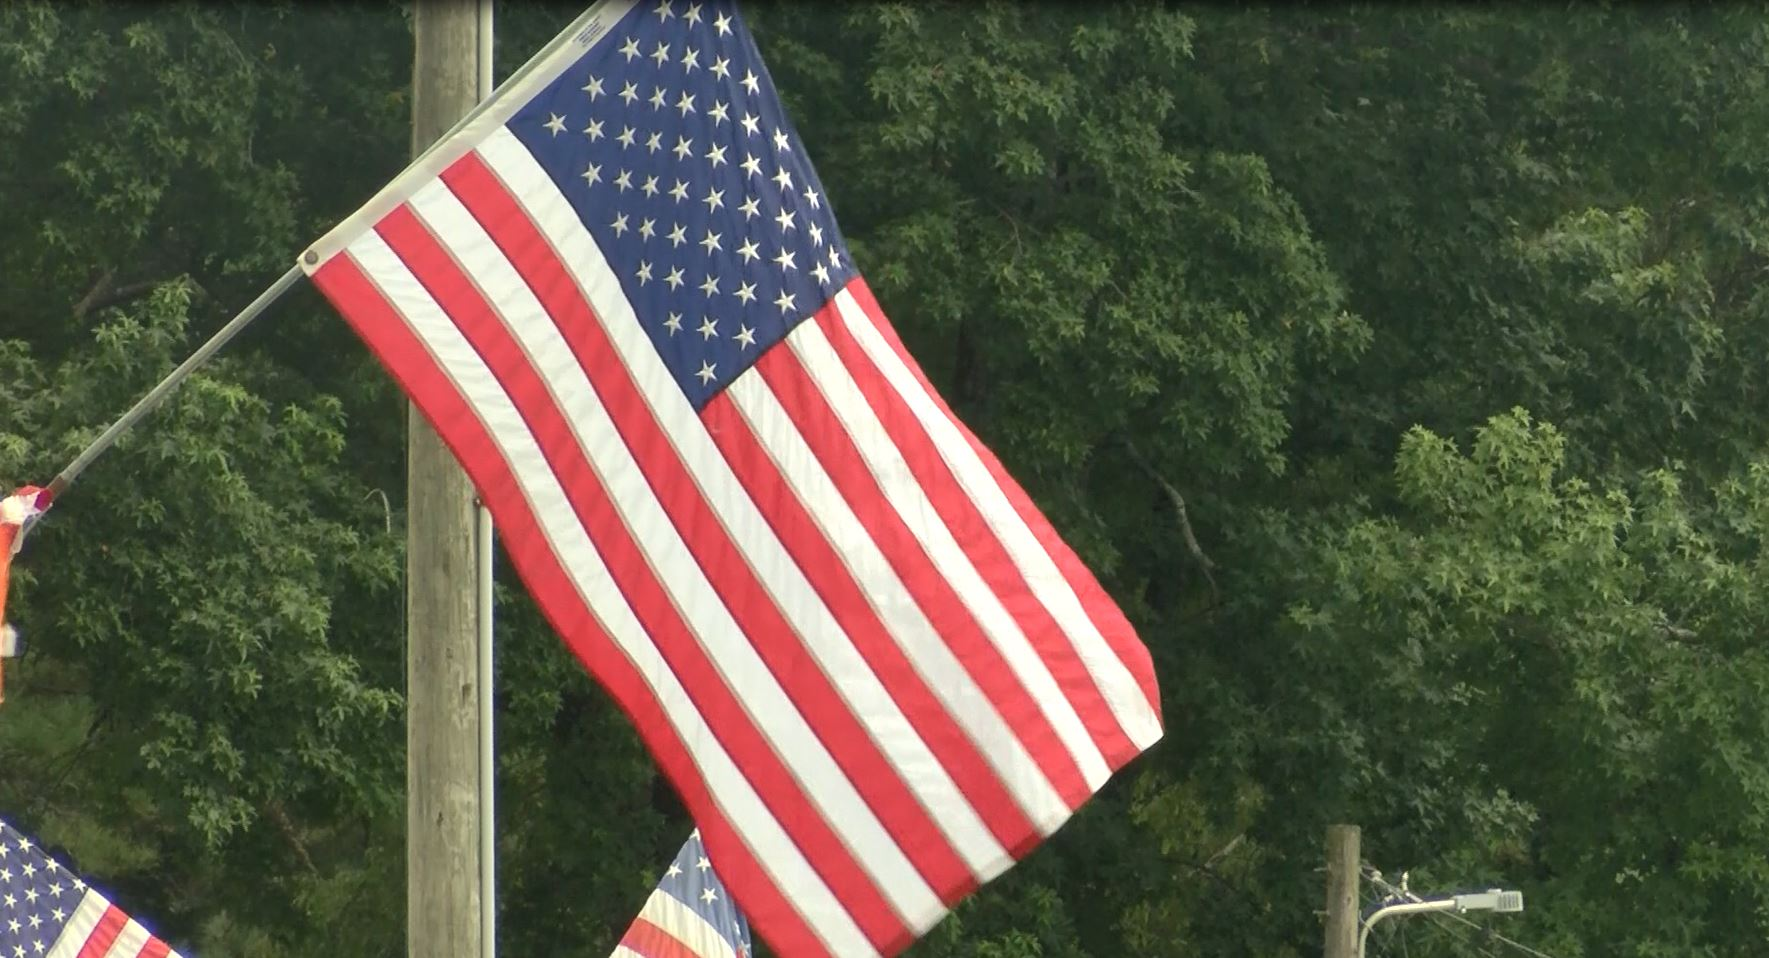 American Flag Hanging From Pole